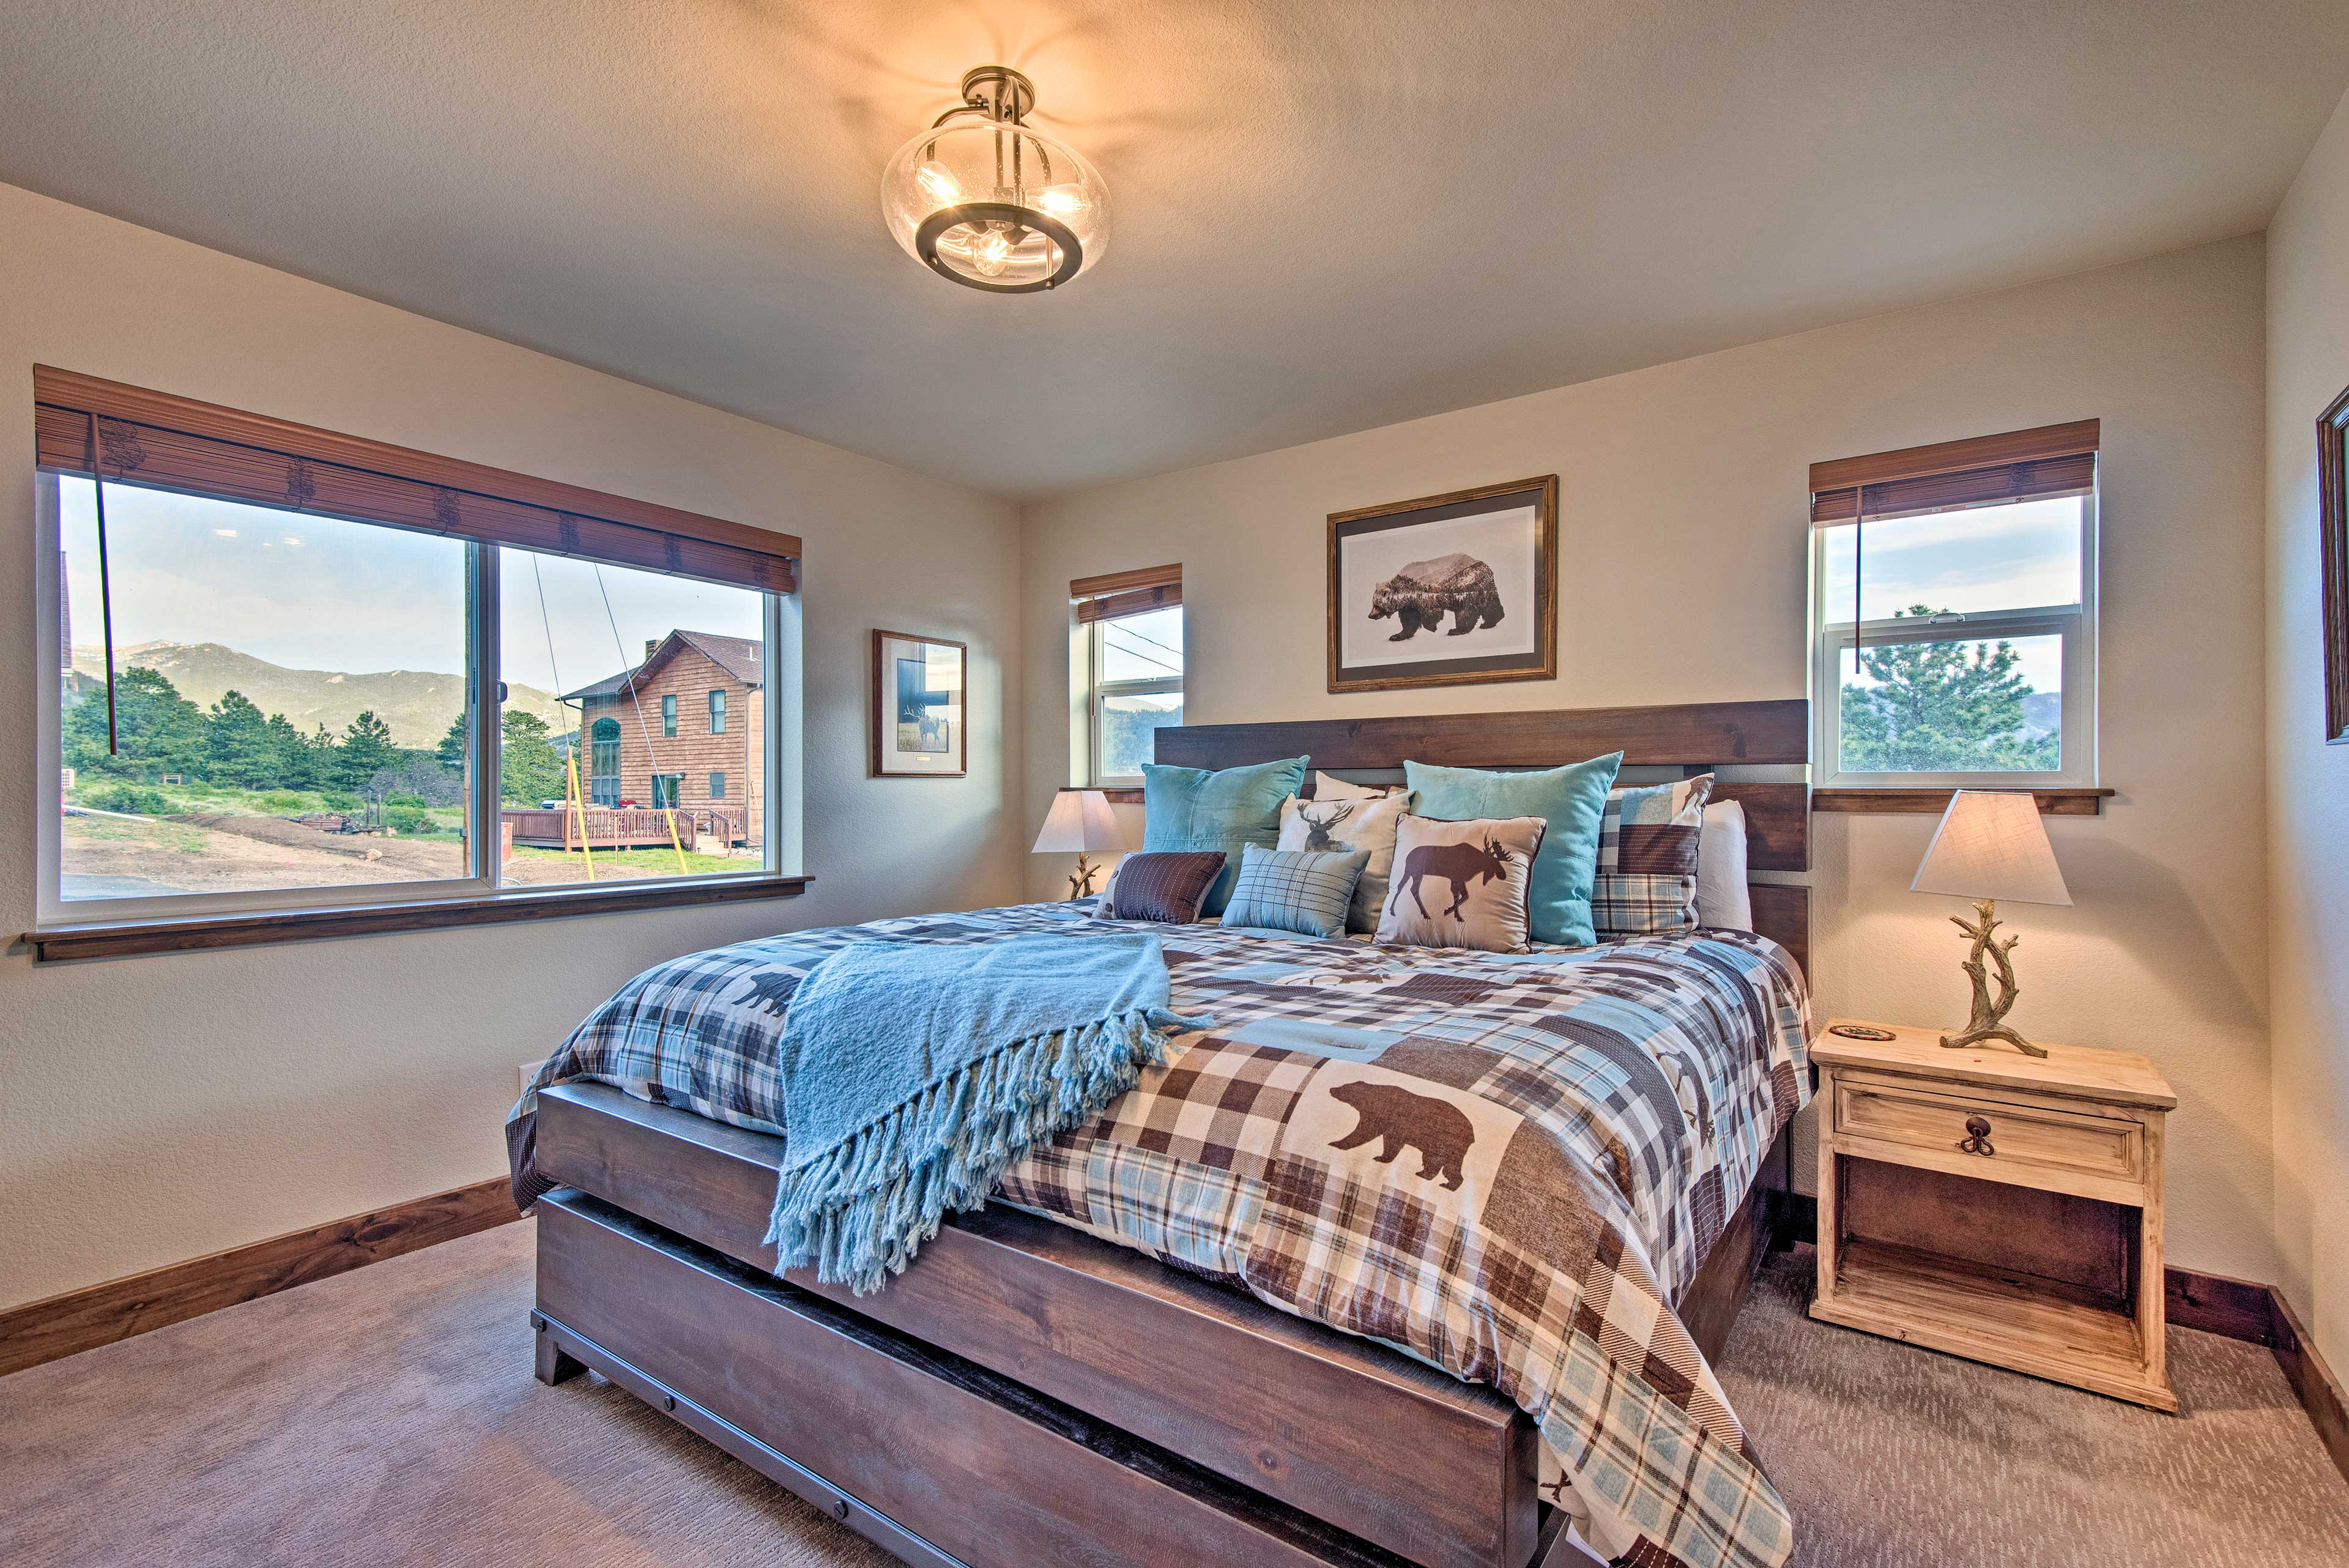 Northwoods decor and wood furnishings bring the master bedroom to life.